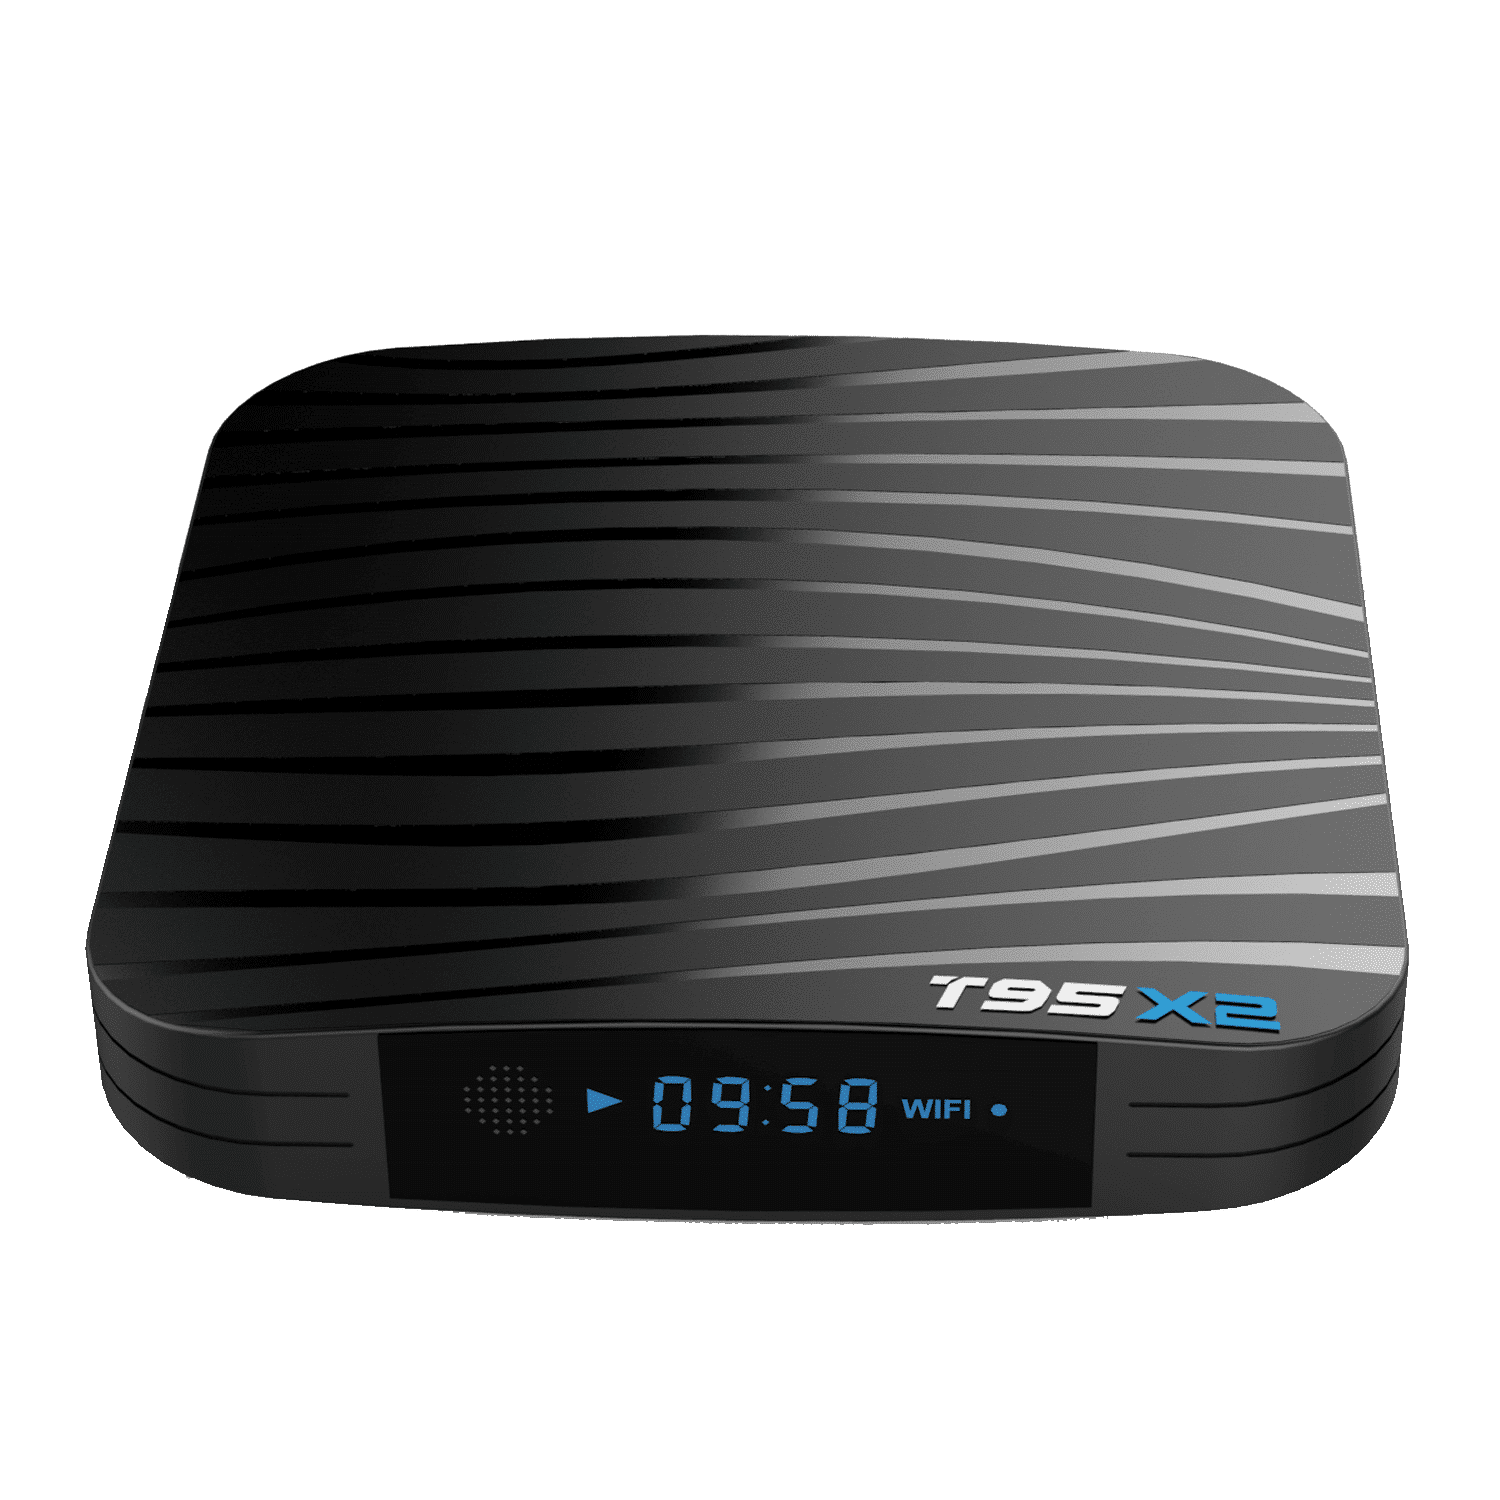 T95X2 Amlogic S905X2 Android 8.1 Oreo Smart TV BOX - Front Top